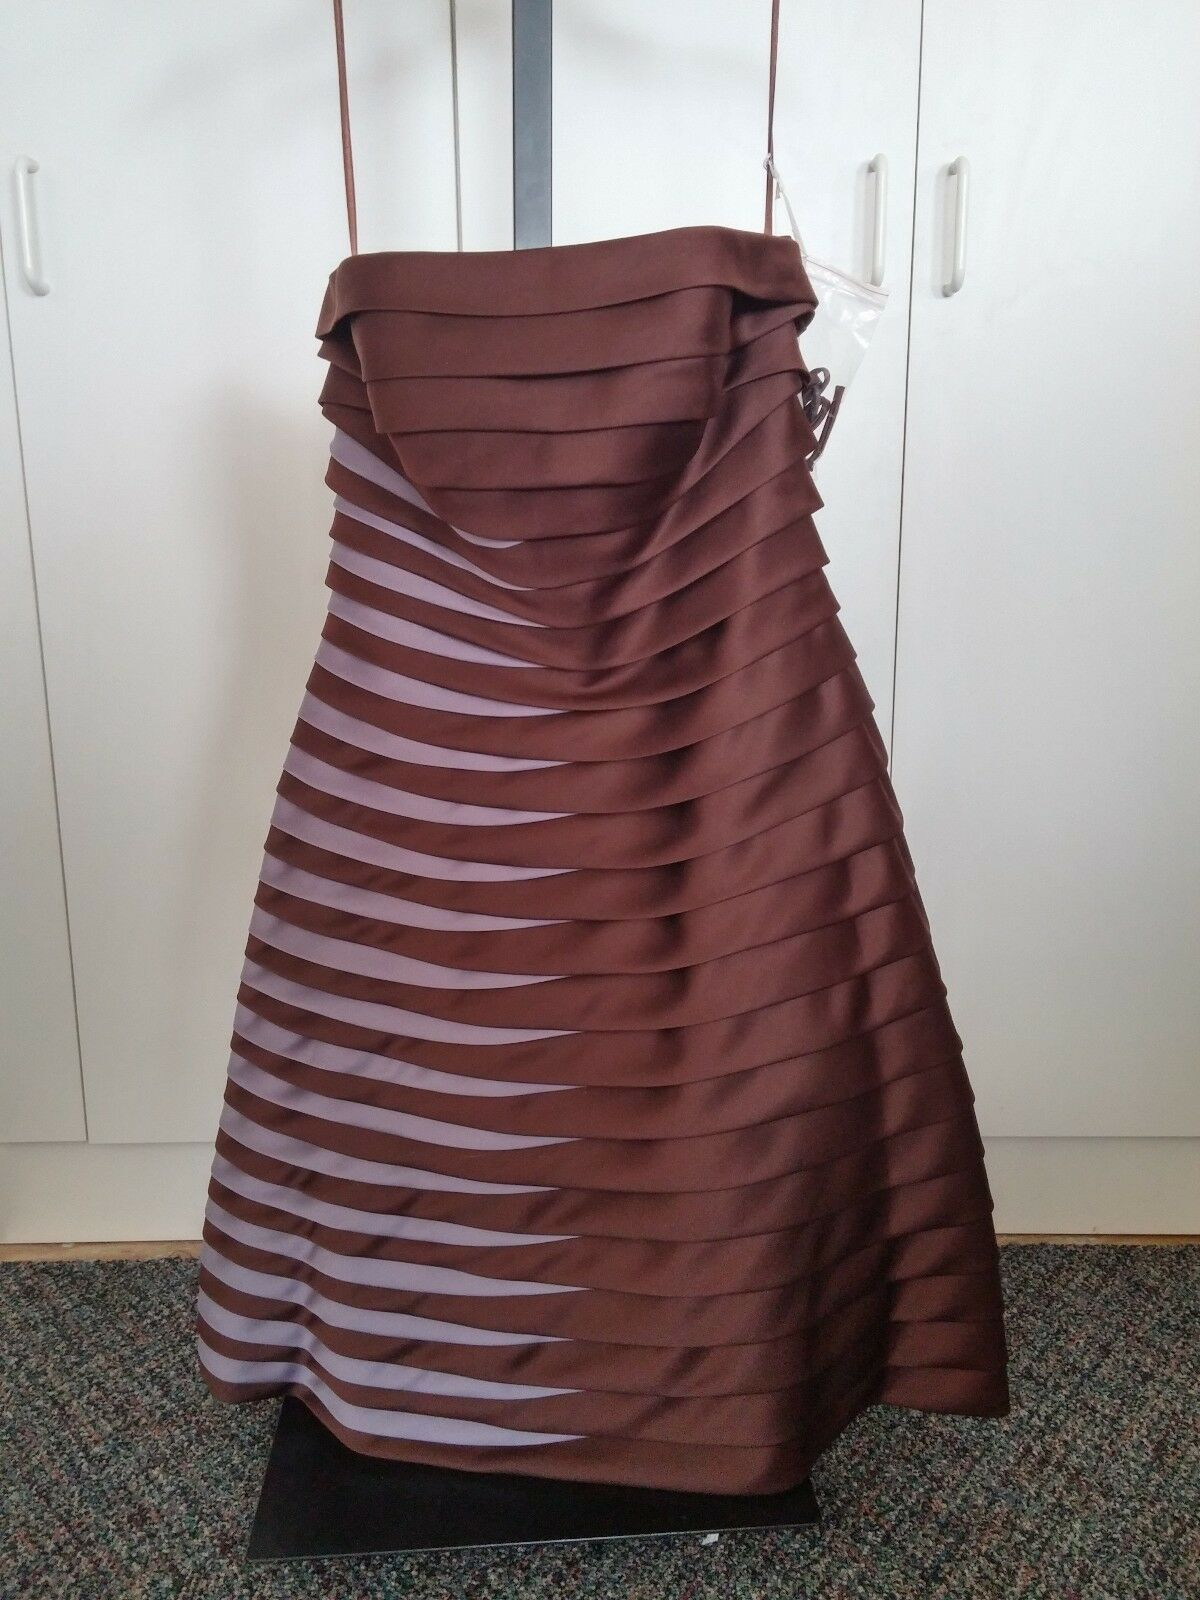 BARI JAY LADIES SHORT GOWN-10-NWT- TAG-HORIZONTAL OVERLAPPING PLEATS-HEAVY